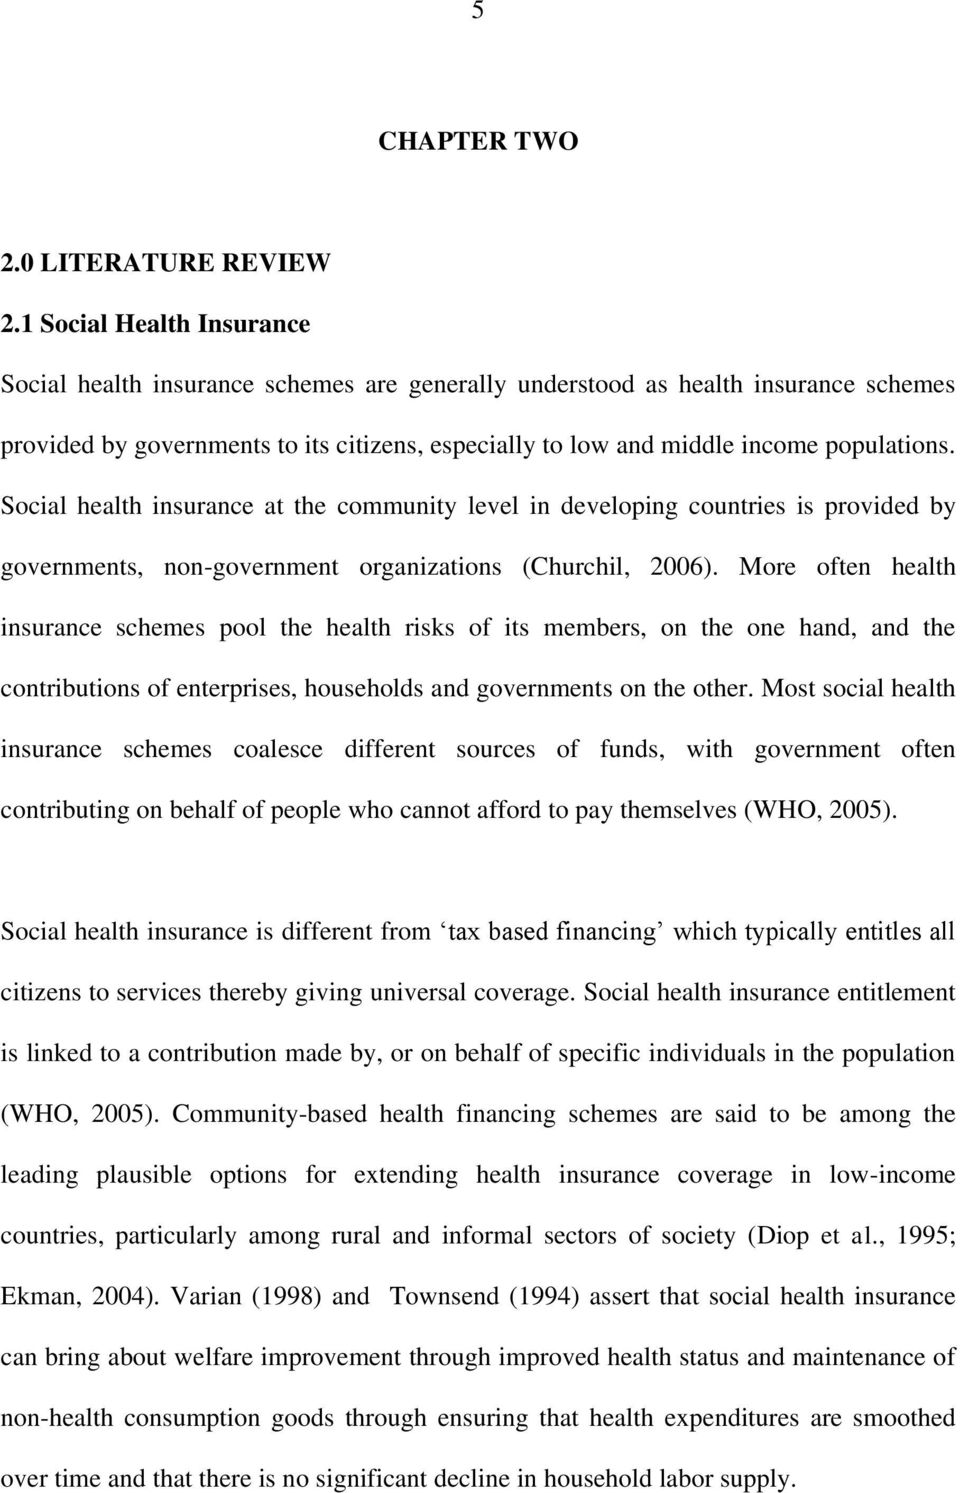 Social health insurance at the community level in developing countries is provided by governments, non-government organizations (Churchil, 2006).